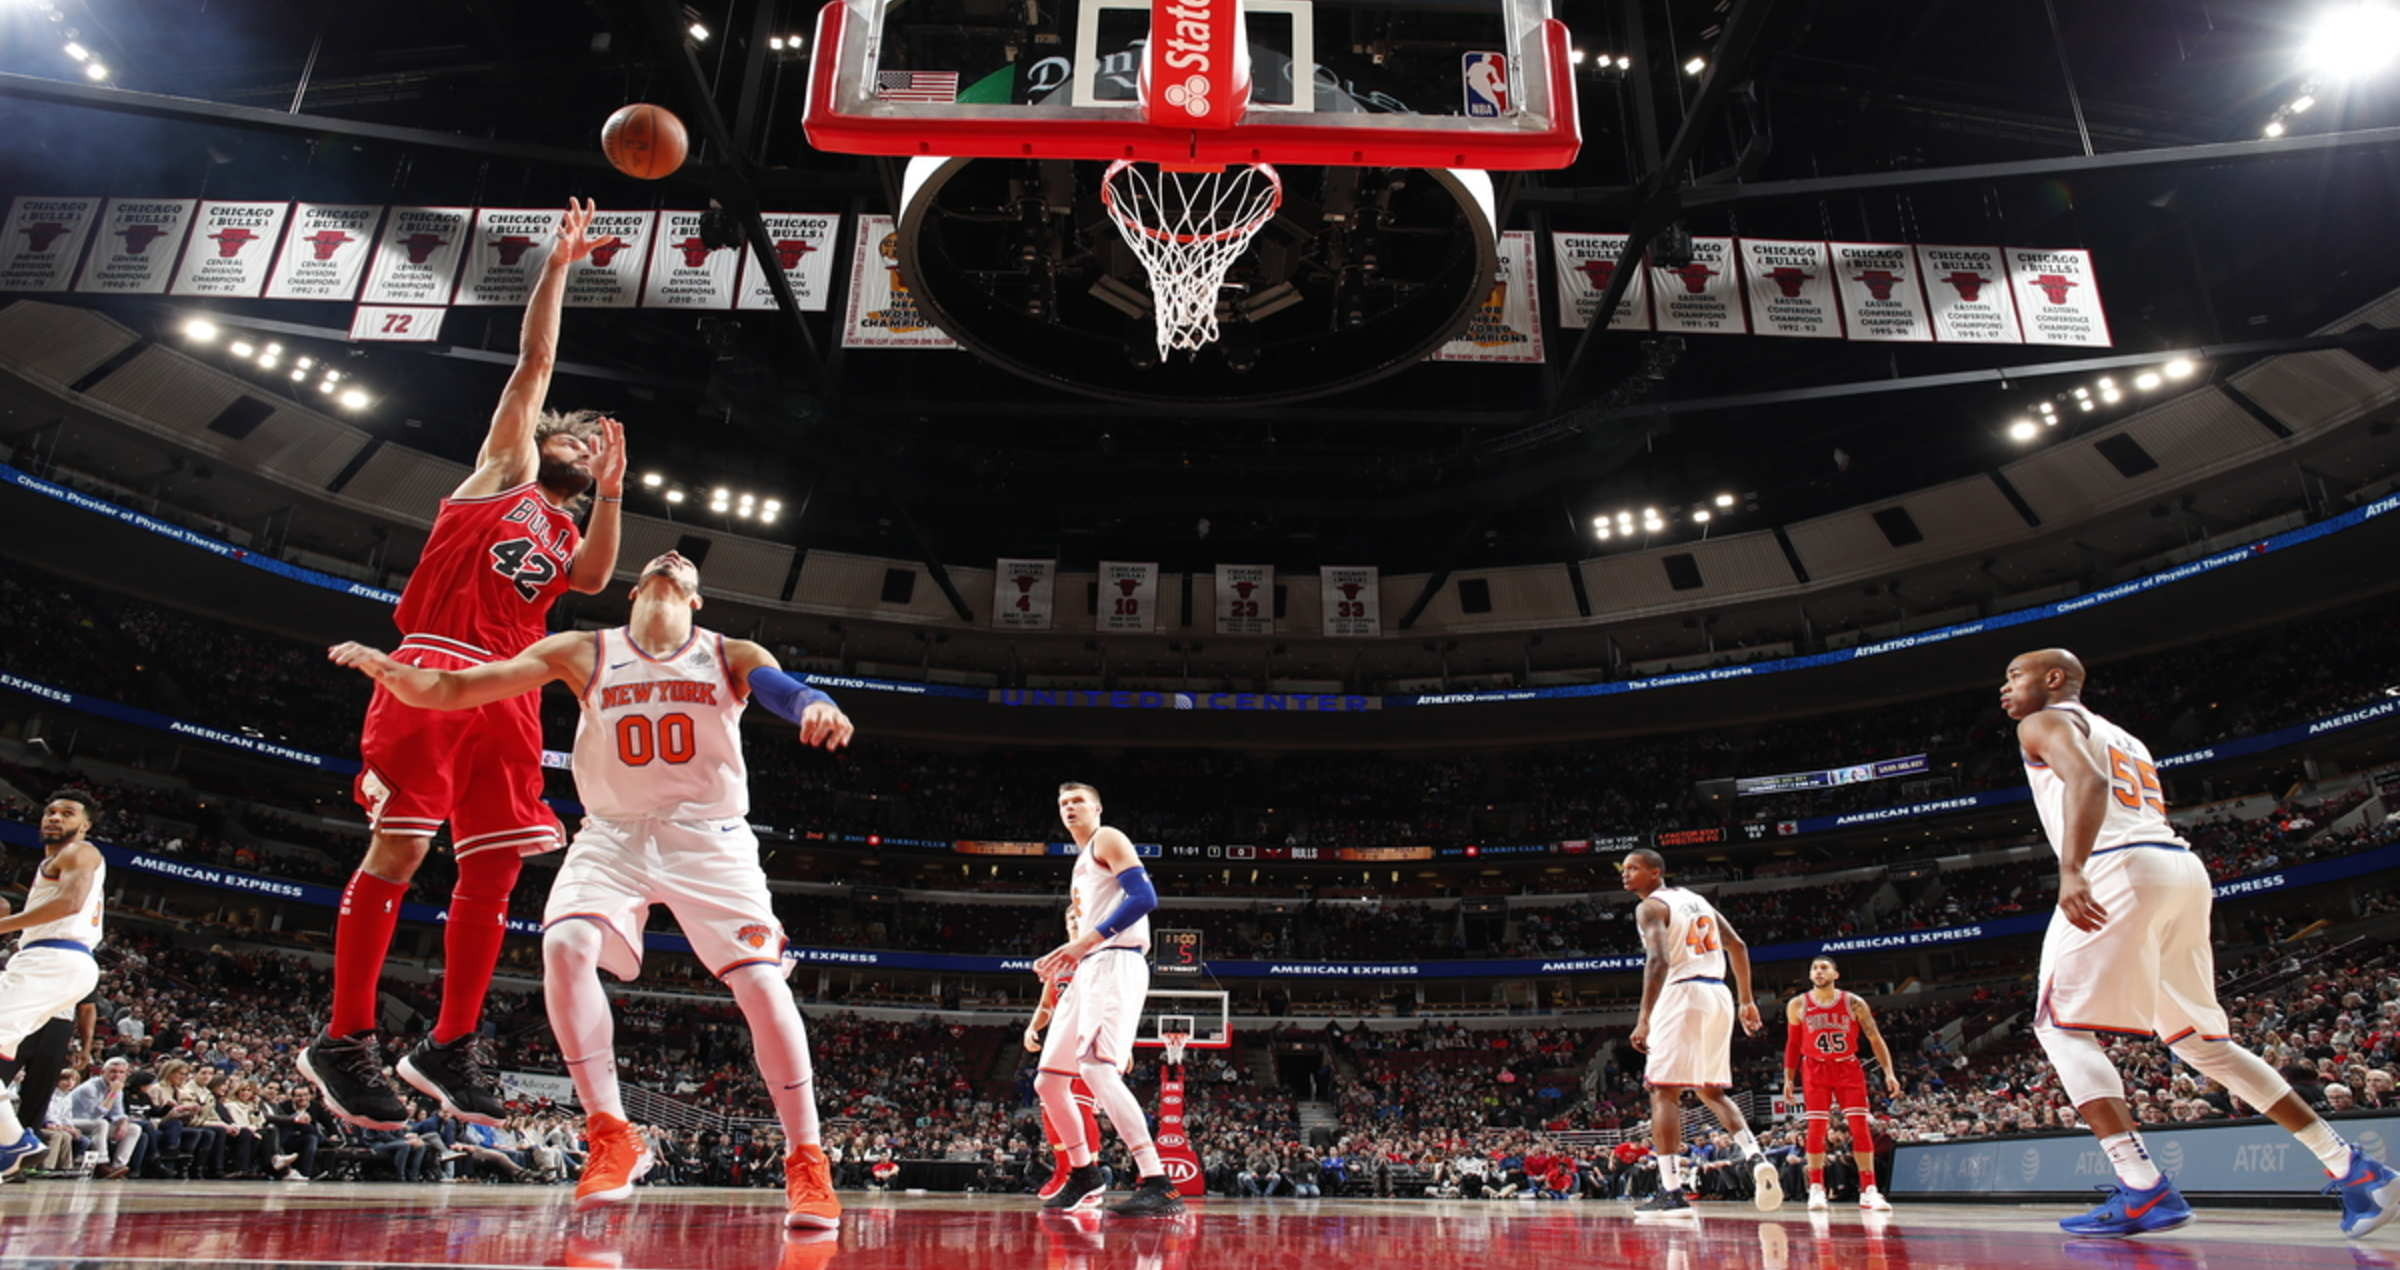 Lopez comes up with a hook shot, as the Bulls beat the Knicks